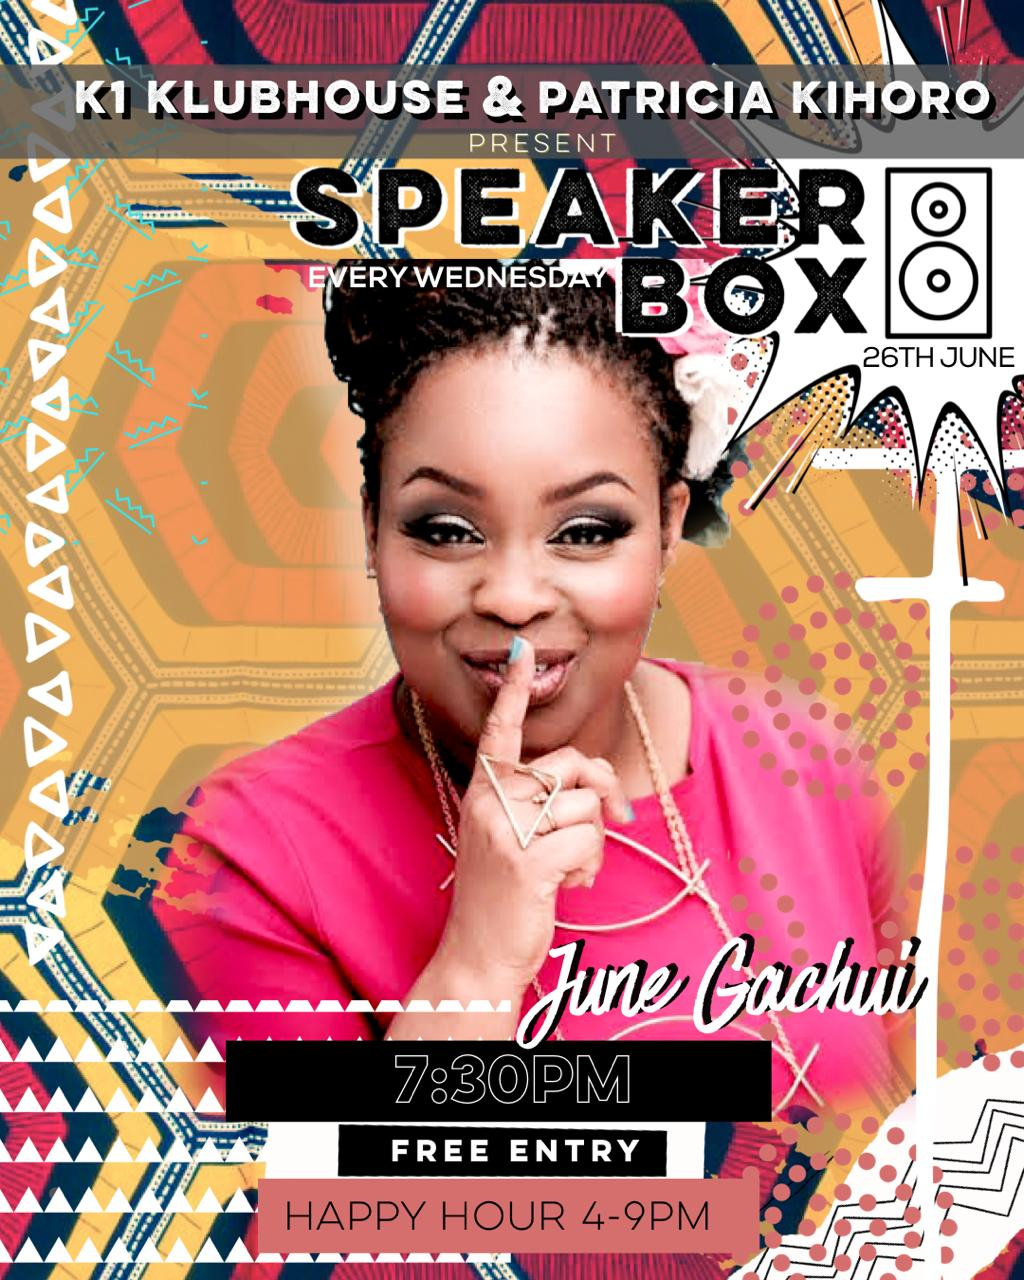 Speaker Box with June Gachui